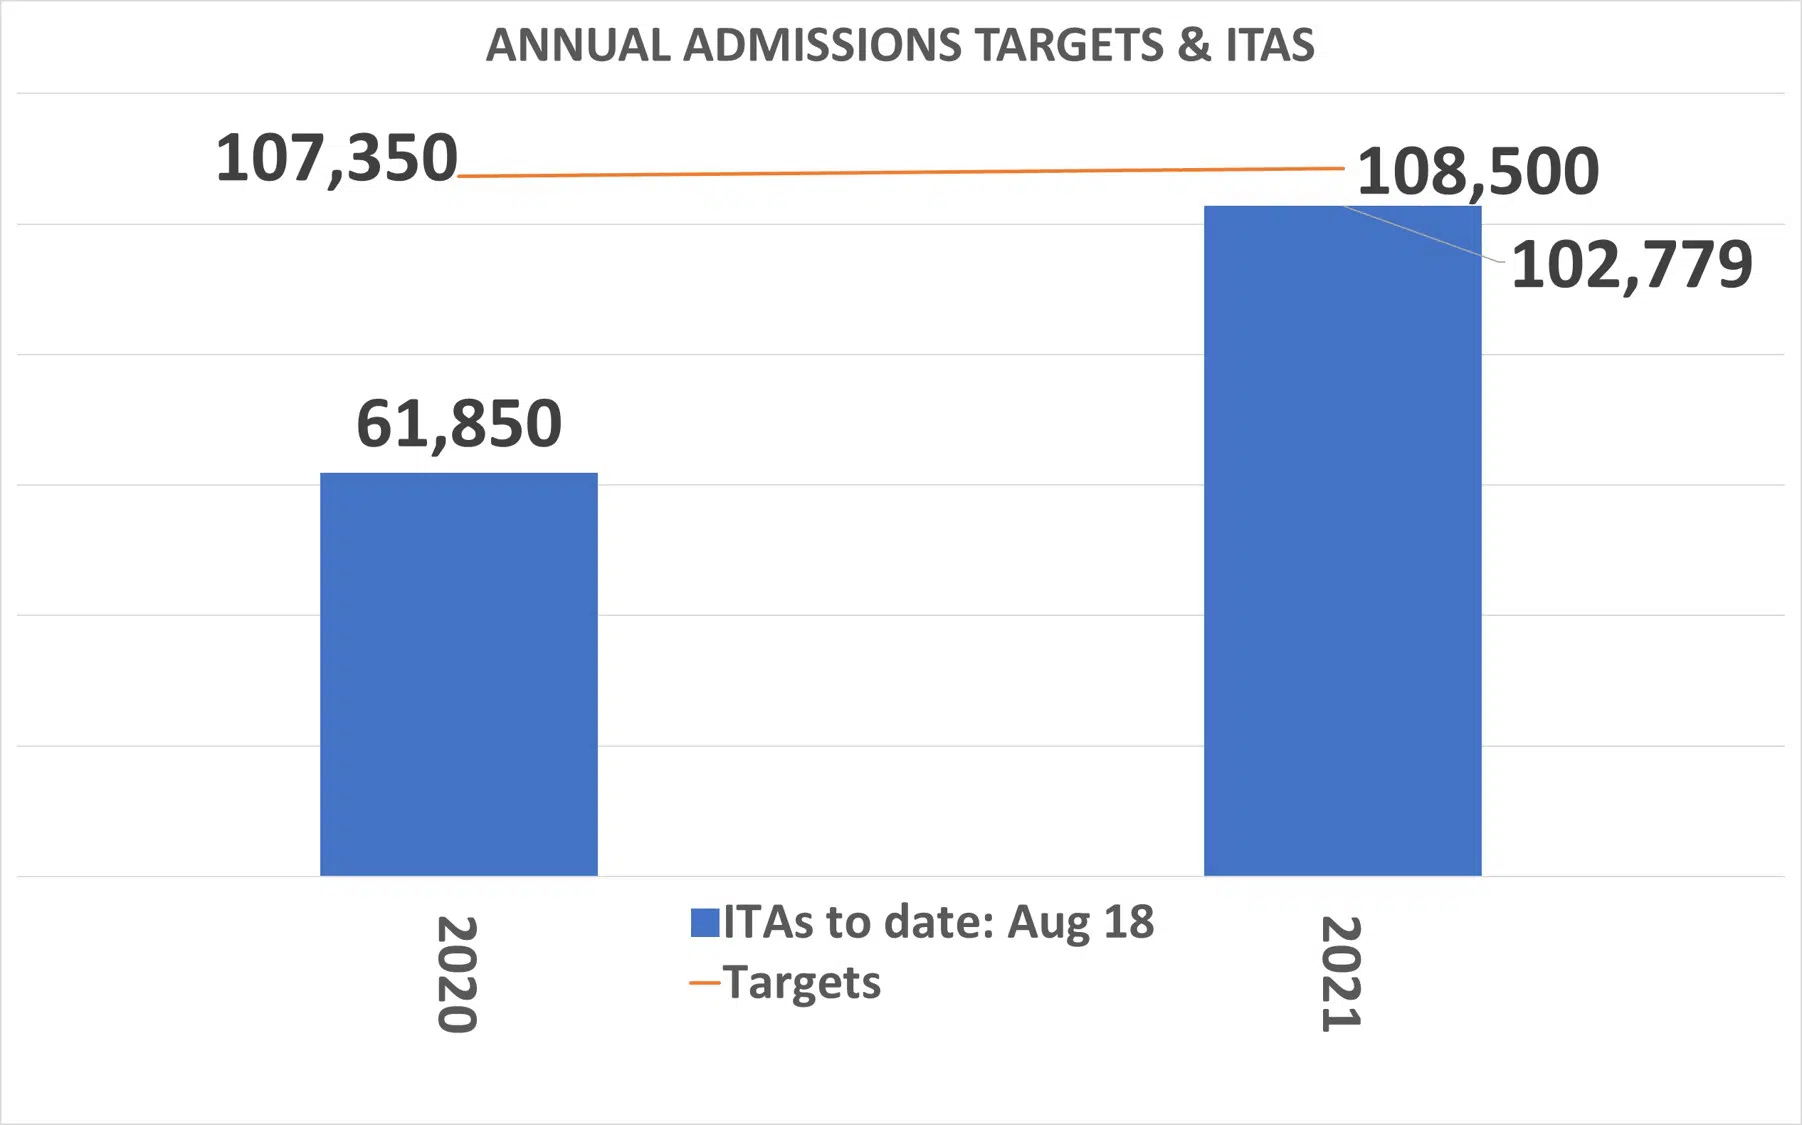 Annual-Admission-targets-and-ITAs-until-Aug-18-2021